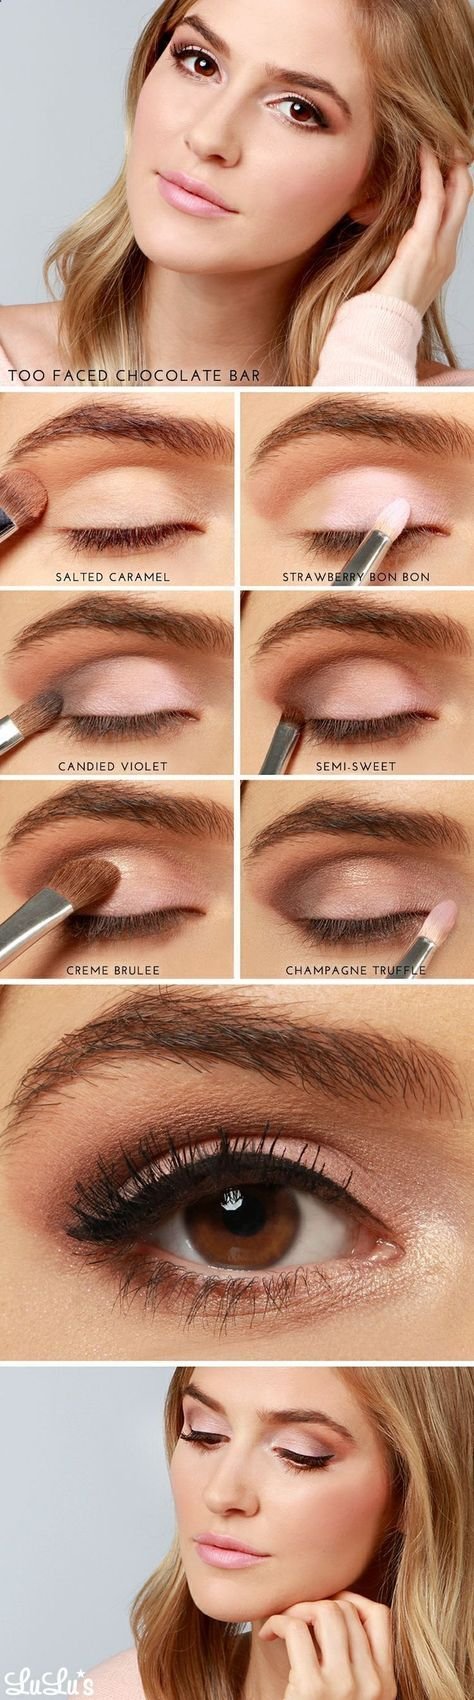 5 Eyeshadow Looks Perfect for Brown-Eyed Girls - Project Inspired